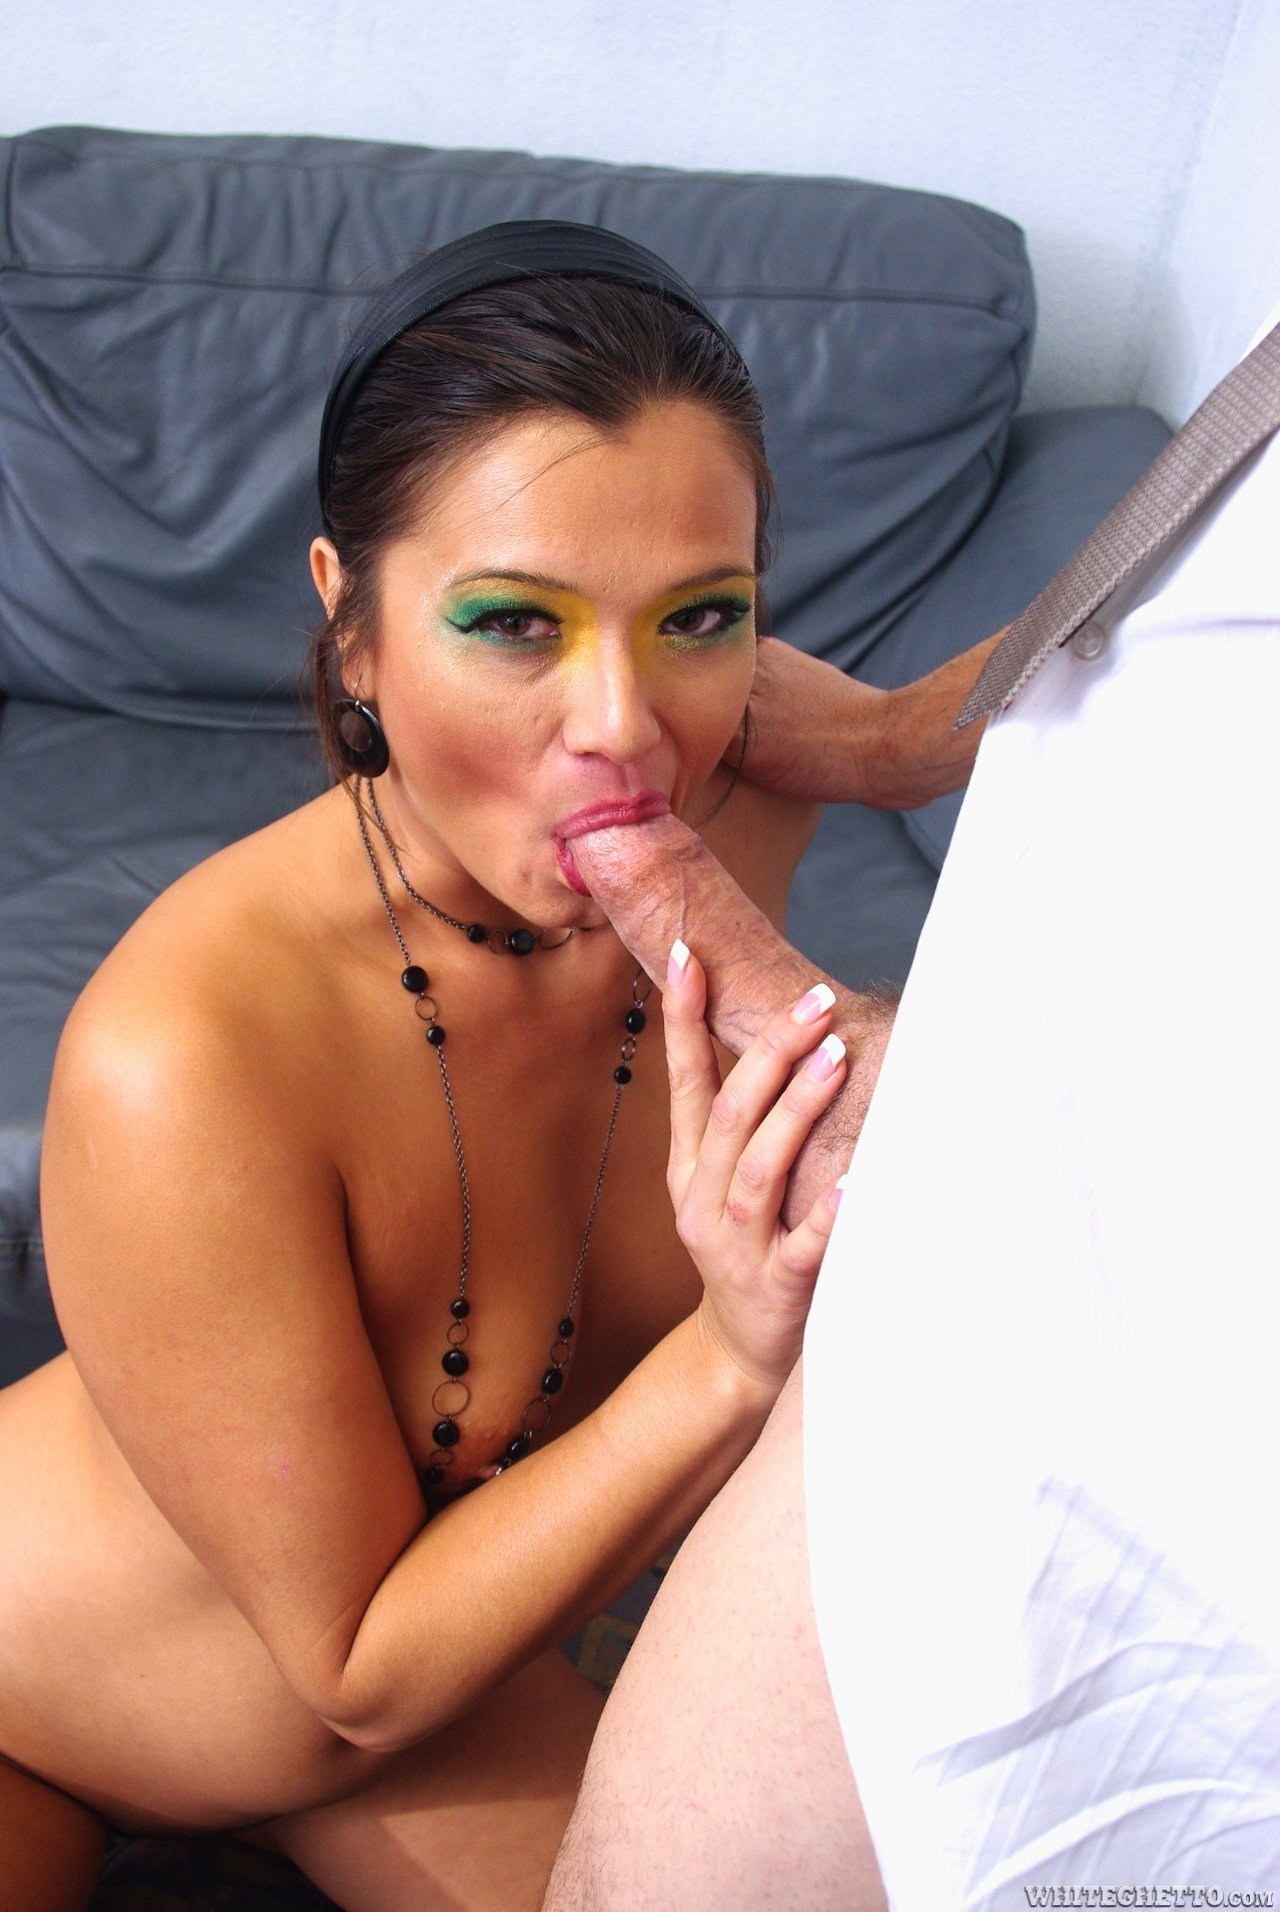 Sweet young creampie #1